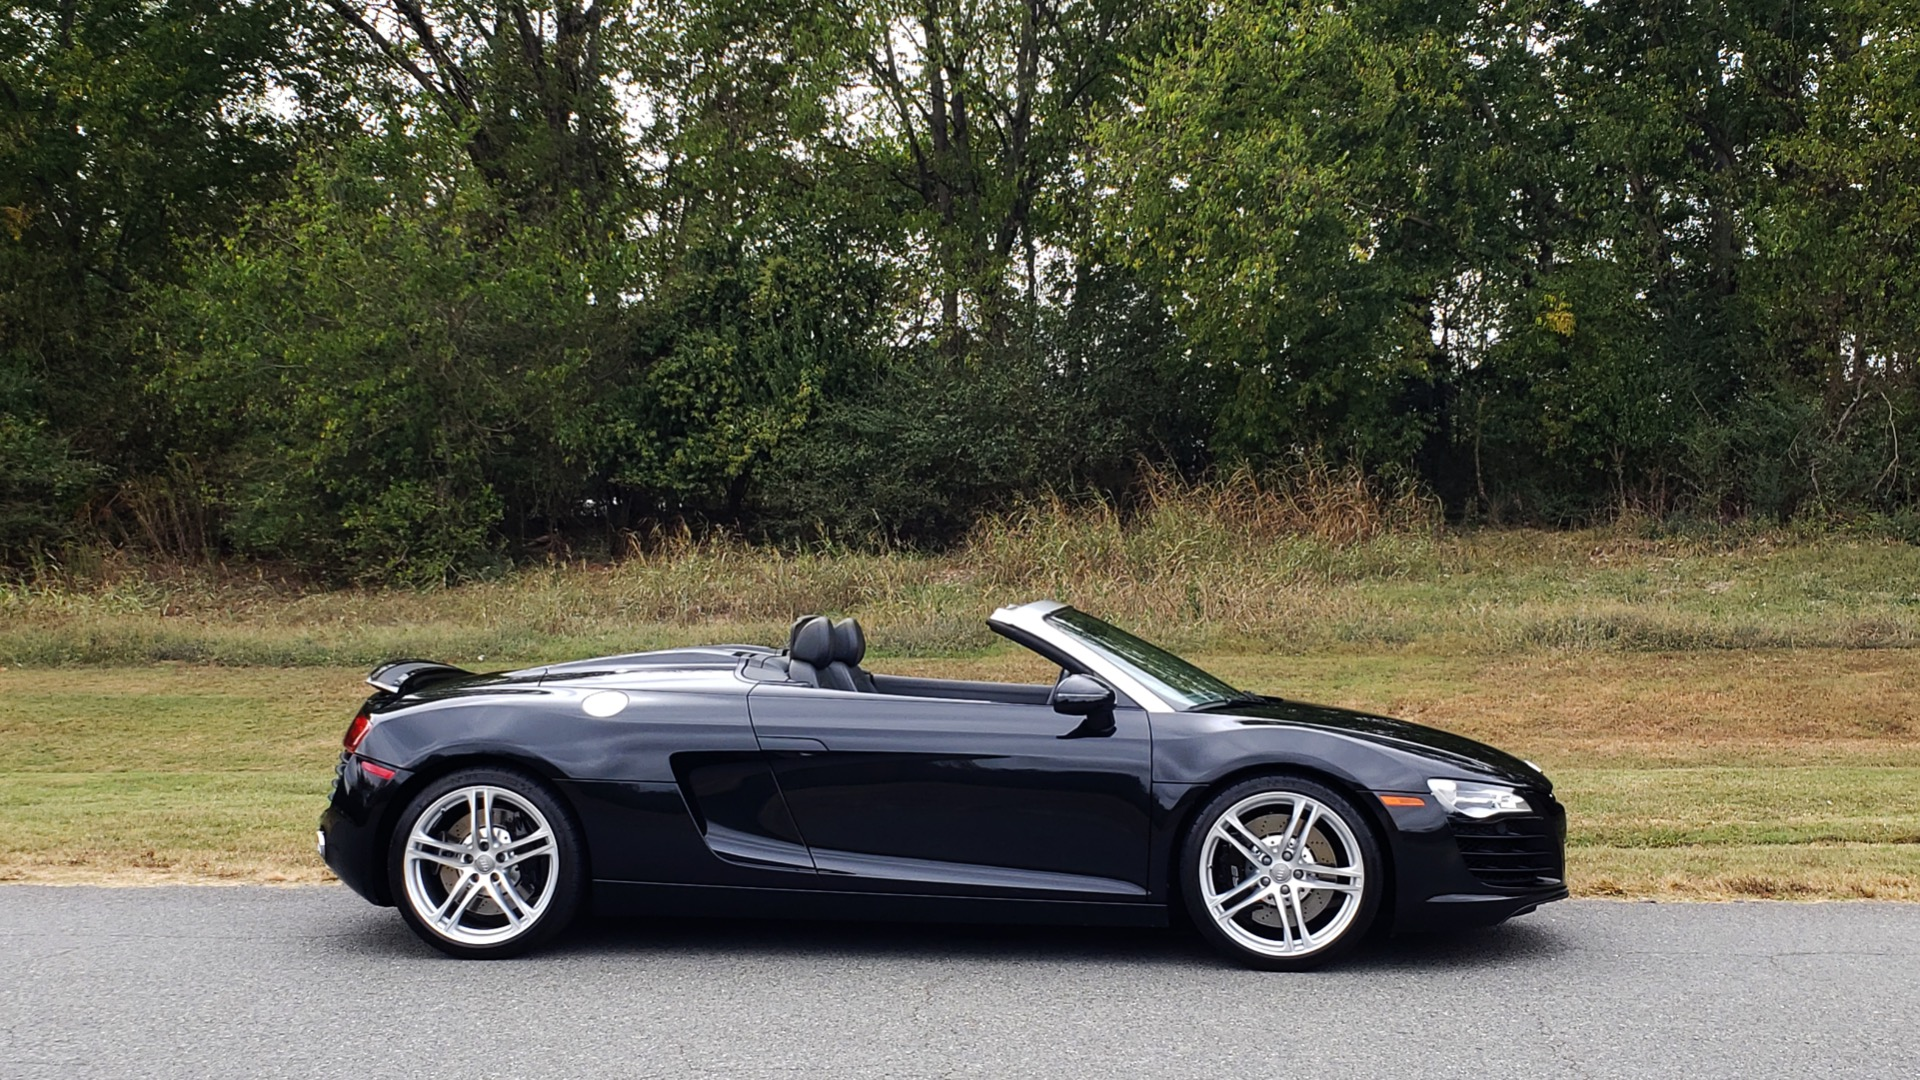 Used 2011 Audi R8 4.2L SPYDER QUATTRO / NAV / 19 IN WHEELS / LOW MILES for sale Sold at Formula Imports in Charlotte NC 28227 20